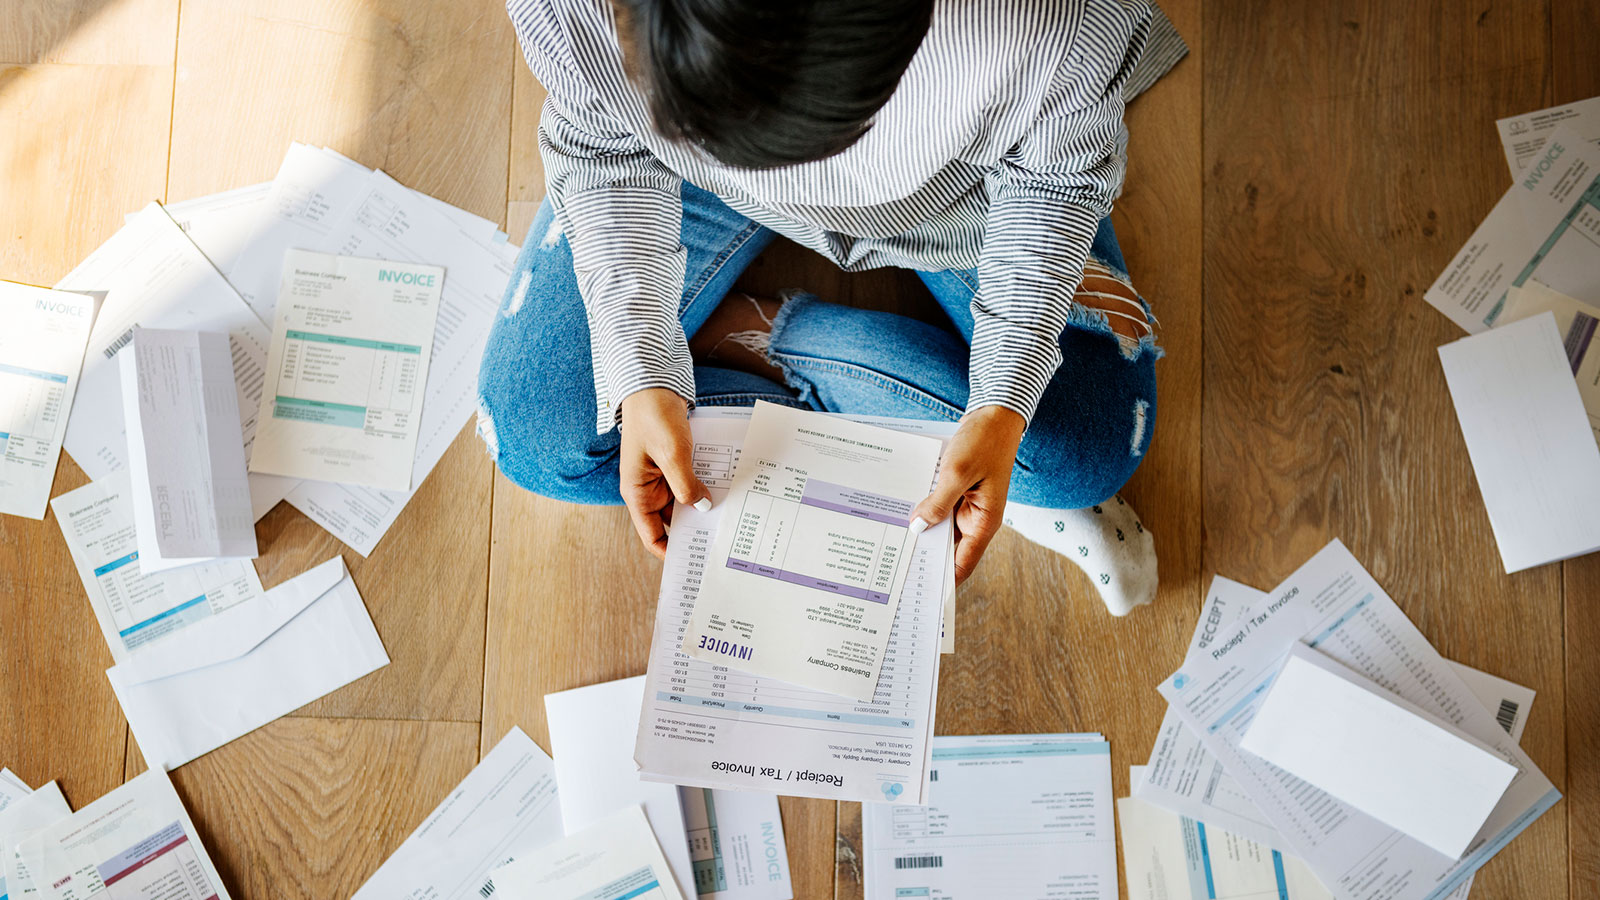 Sorting old receipts and invoices